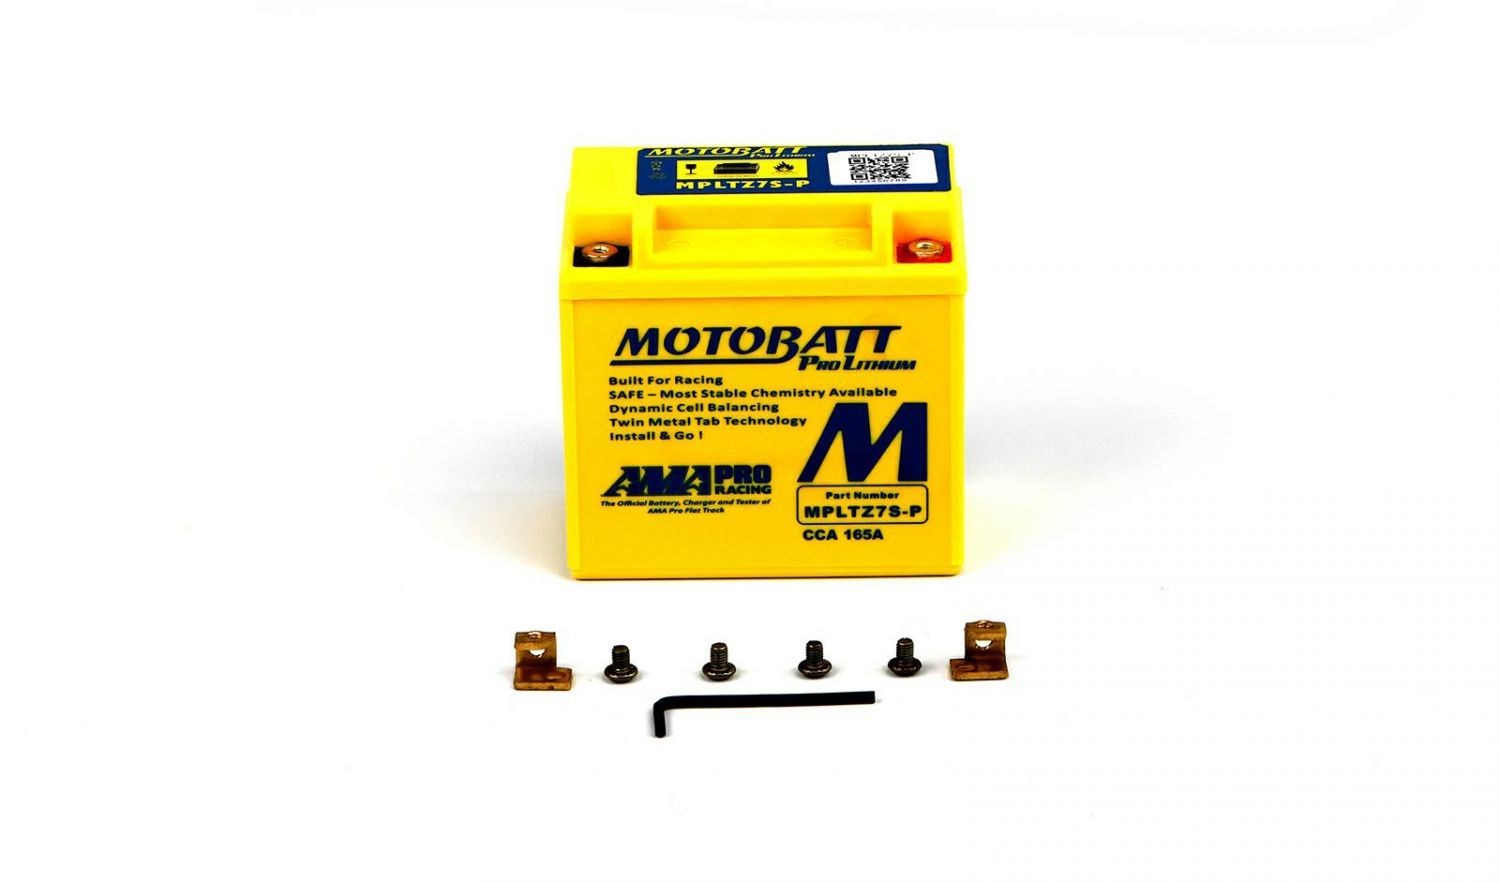 Motobatt Lithium Batteries - 501079ML image